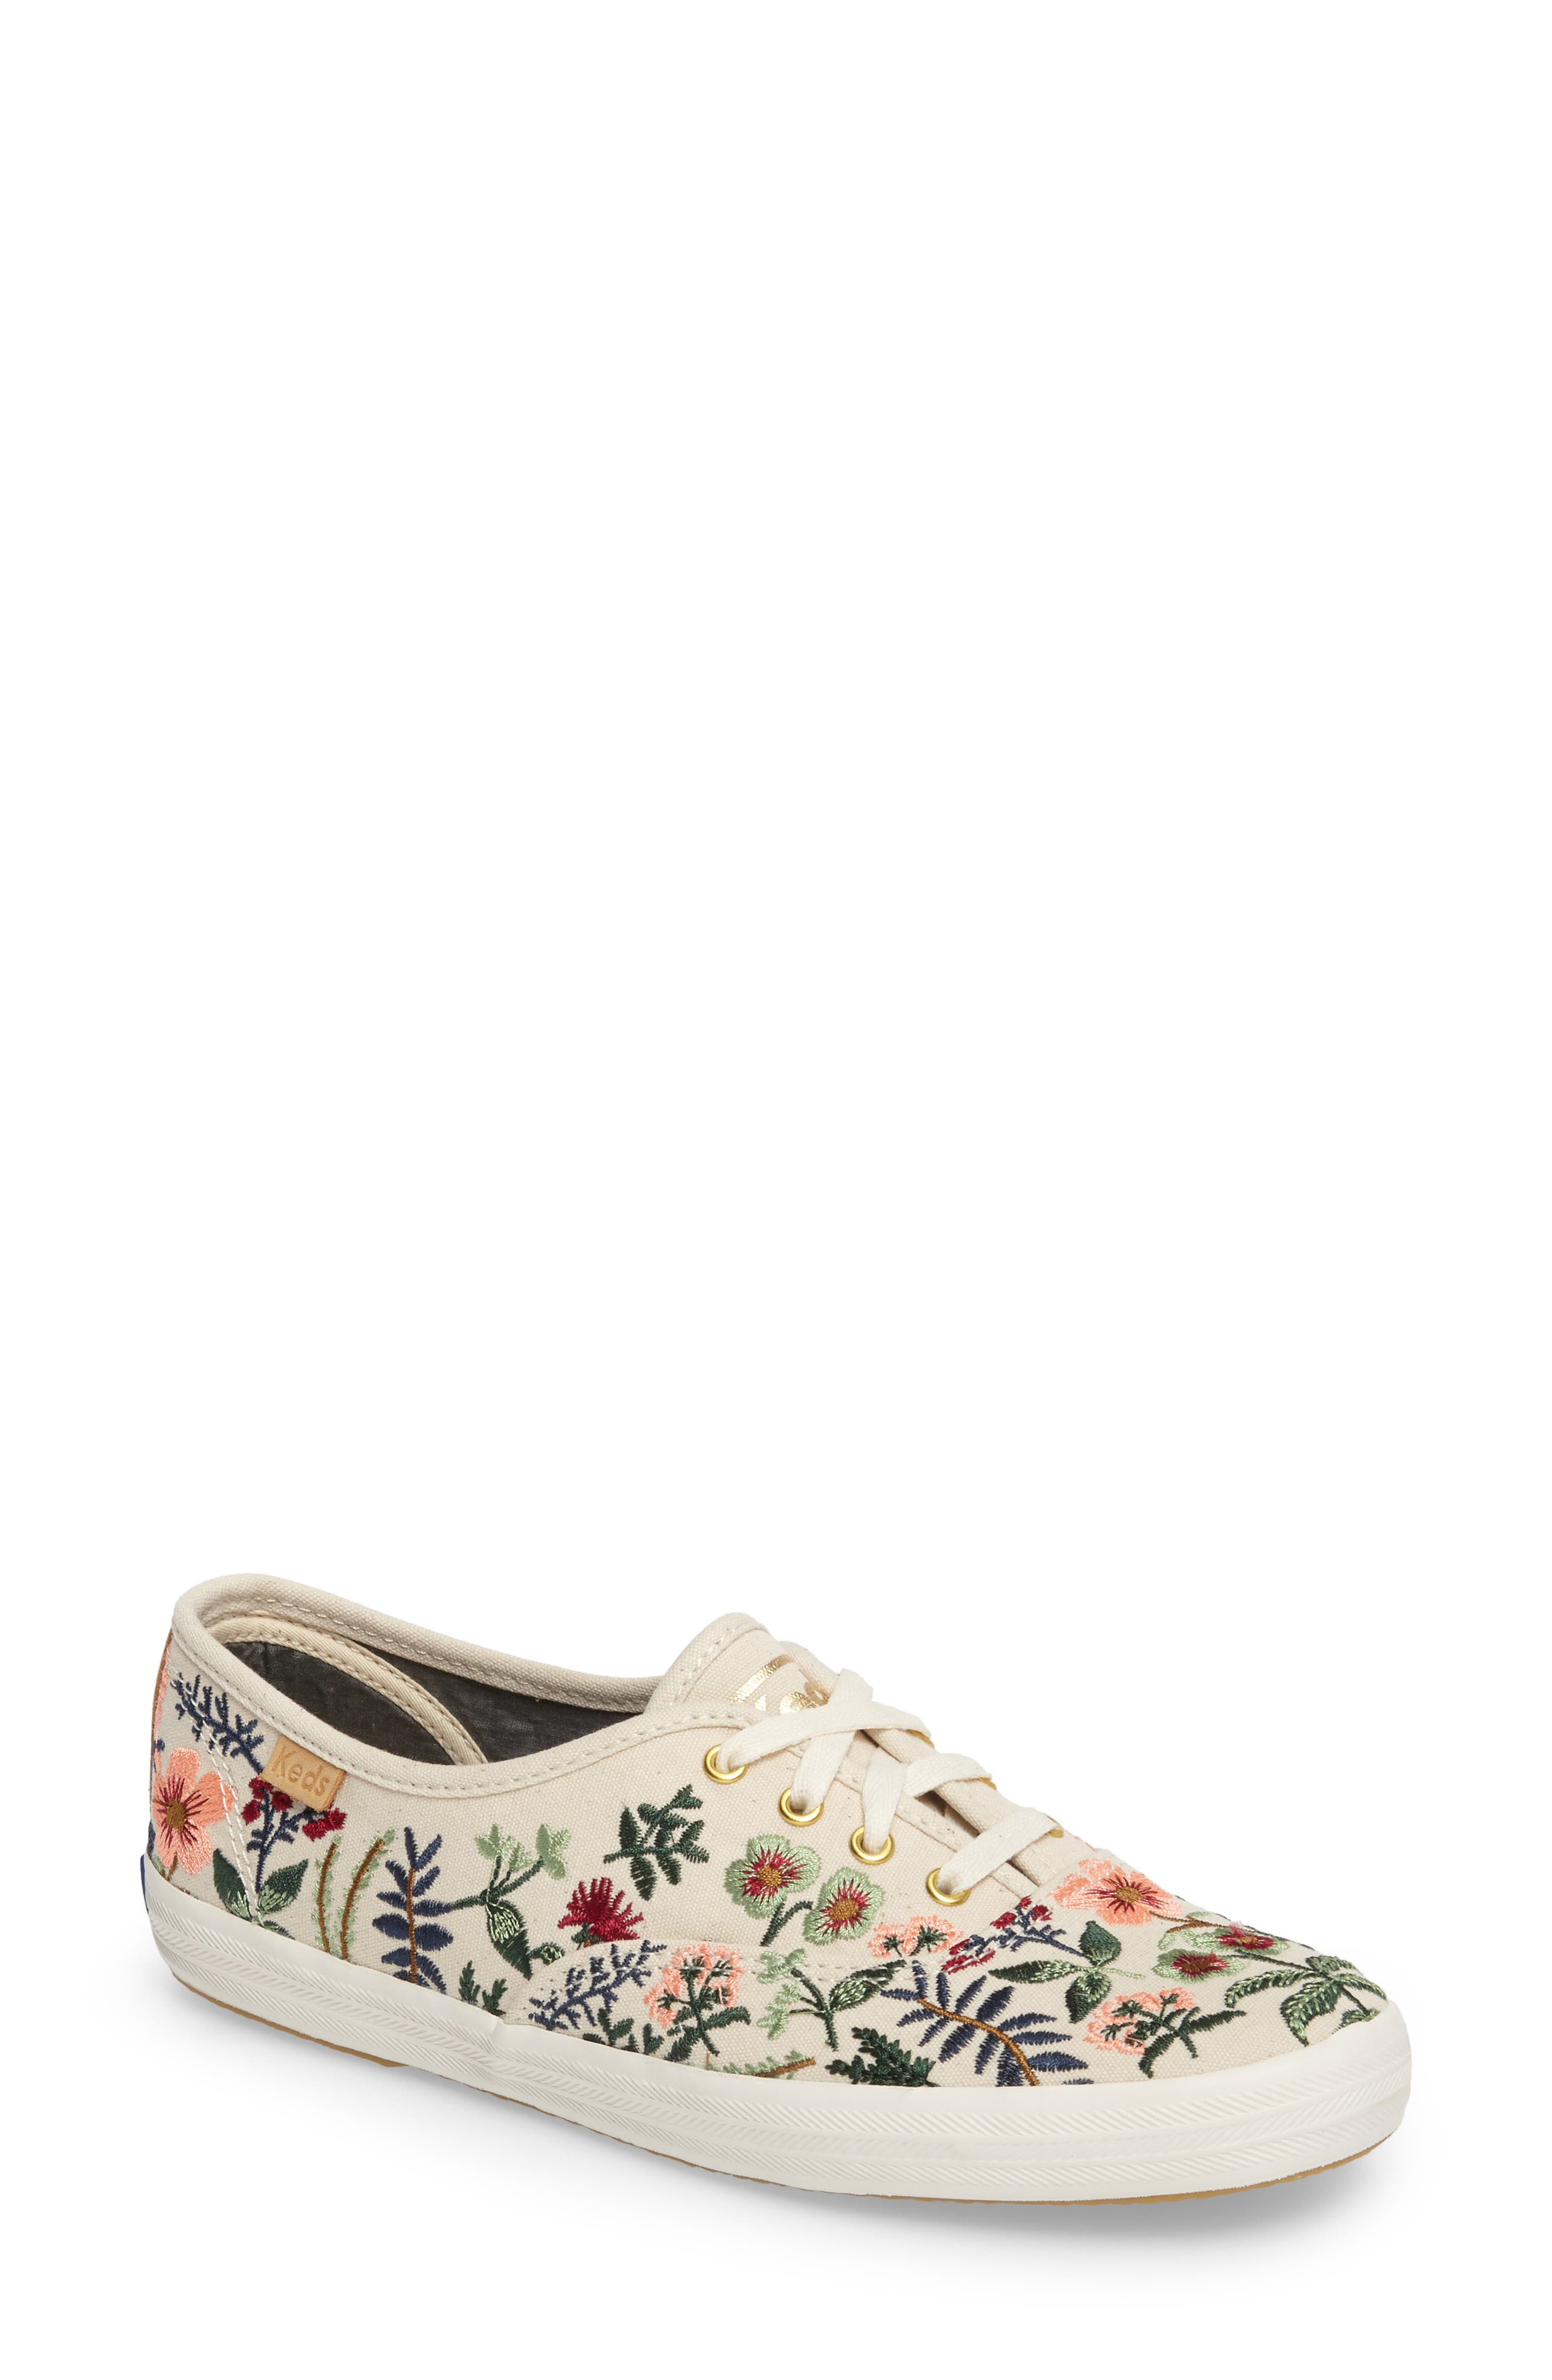 Main Image - Keds® x Rifle Paper Co. Herb Garden Embroidered Sneaker (Women)